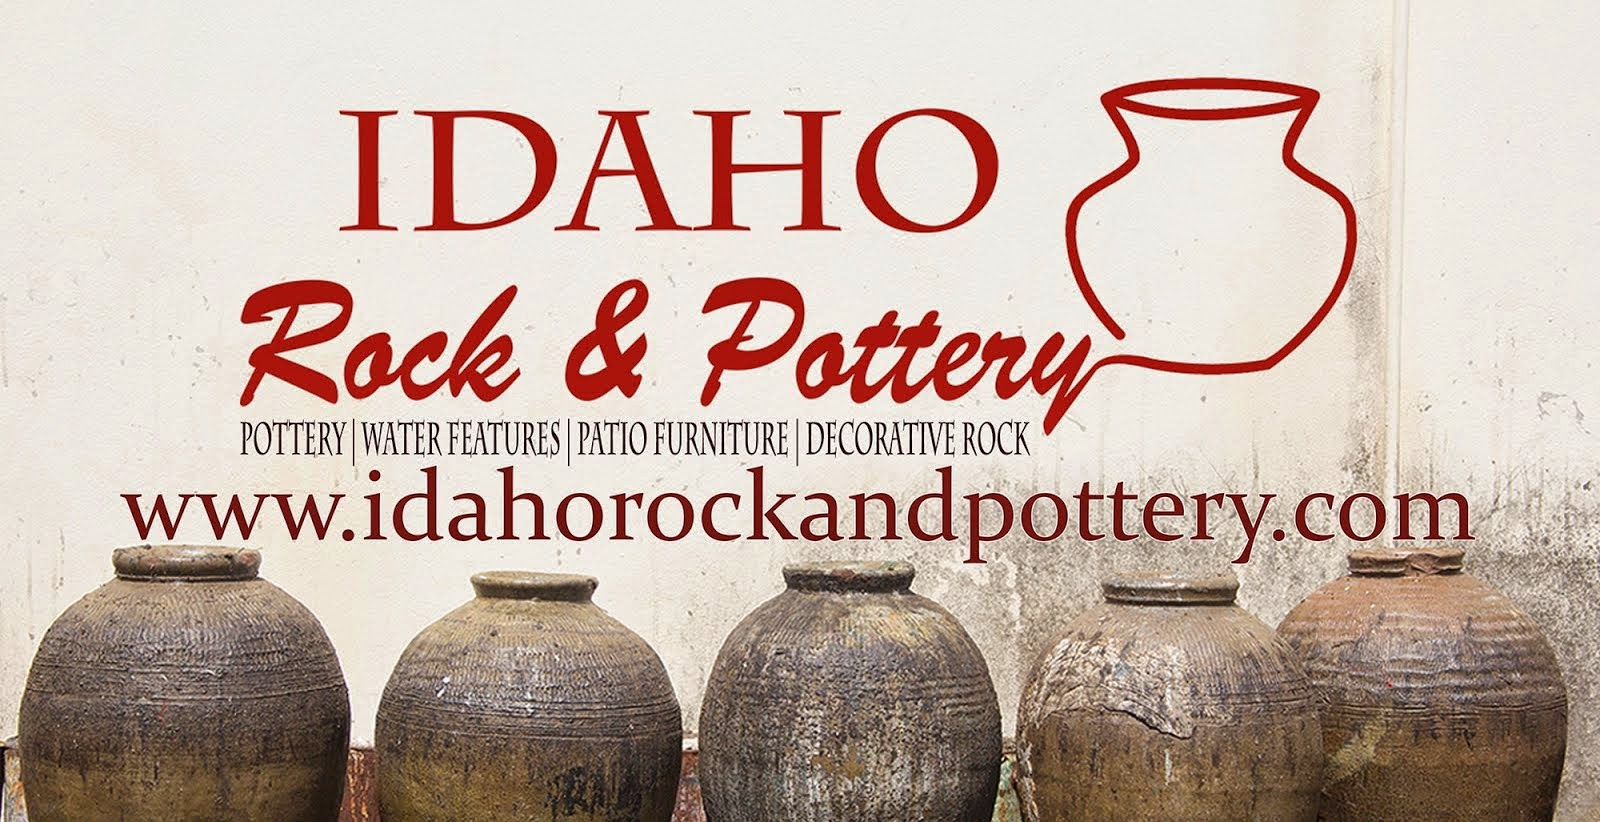 Idaho Rock and Pottery